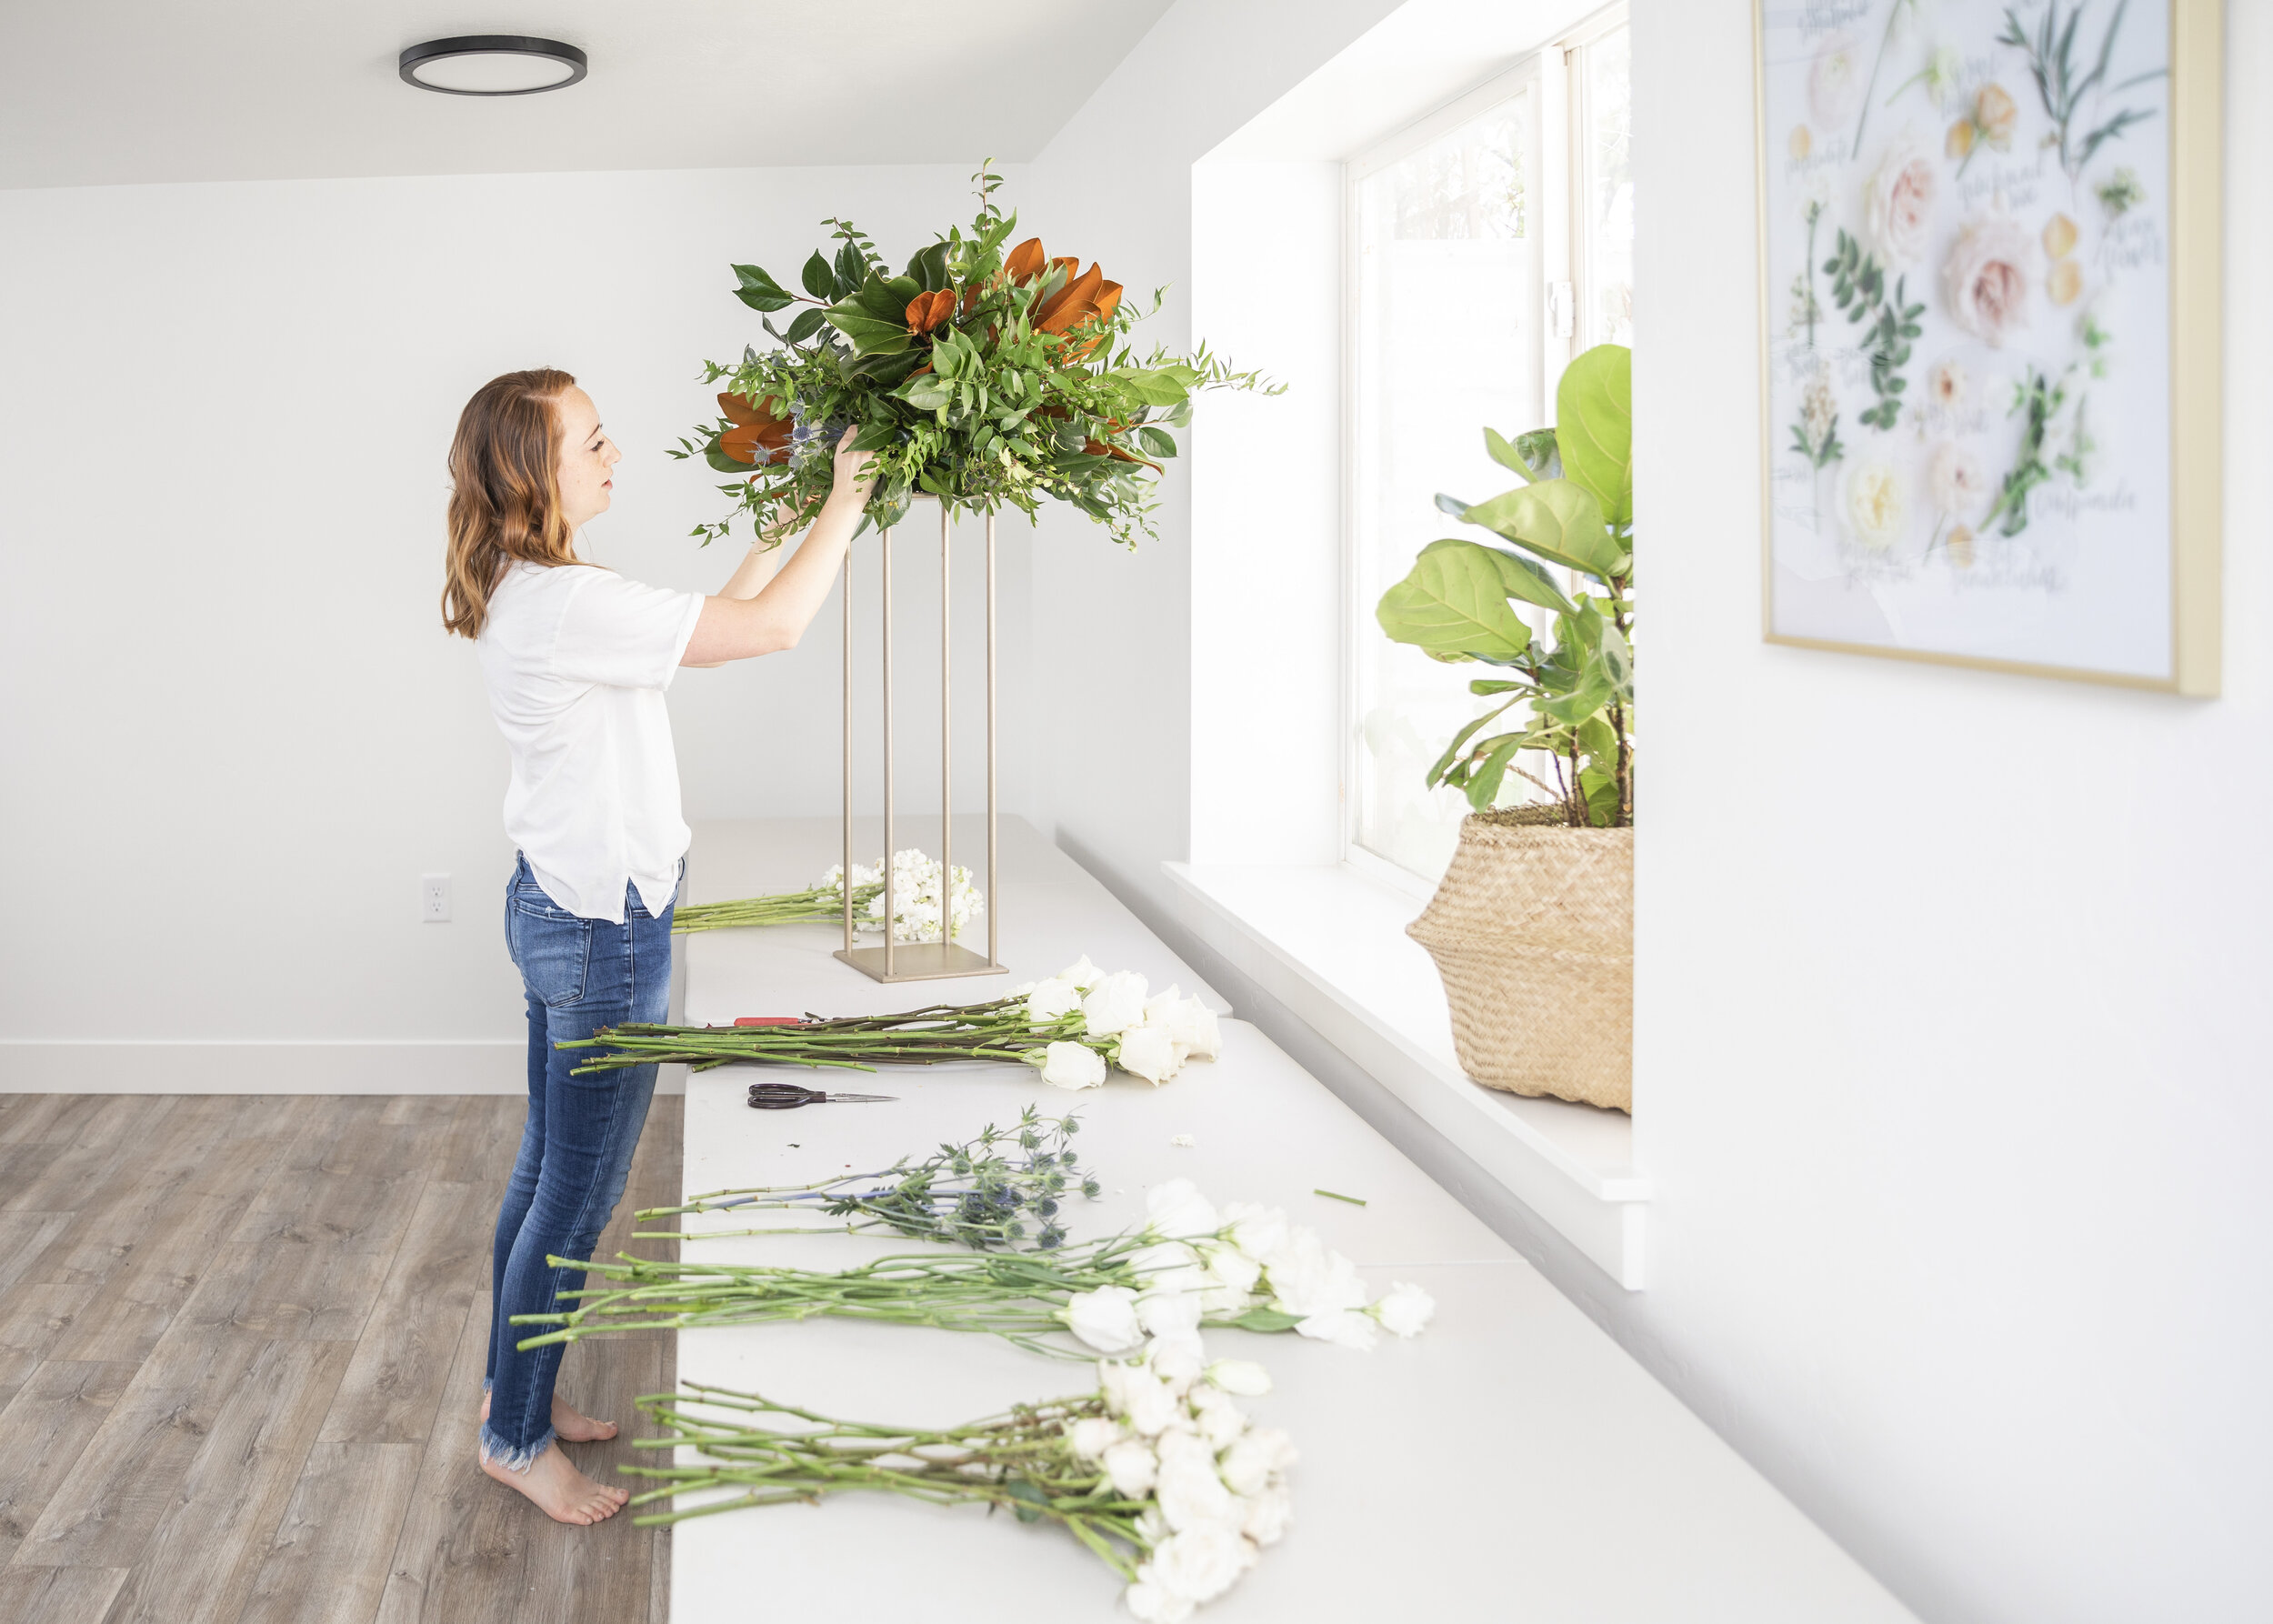 florist in her zone florist in her element florist in utah county  blushing rose floral florist will make a custom mood board and show pictures that showcase style and aesthetic of your florist she will break down cost has great dedication to clients and your wedding day choices #floristtips #tipsandtricks #vendorspotlight #blushingrosefloral #florist #utahcounty #wedding #inspiration #help #flowers